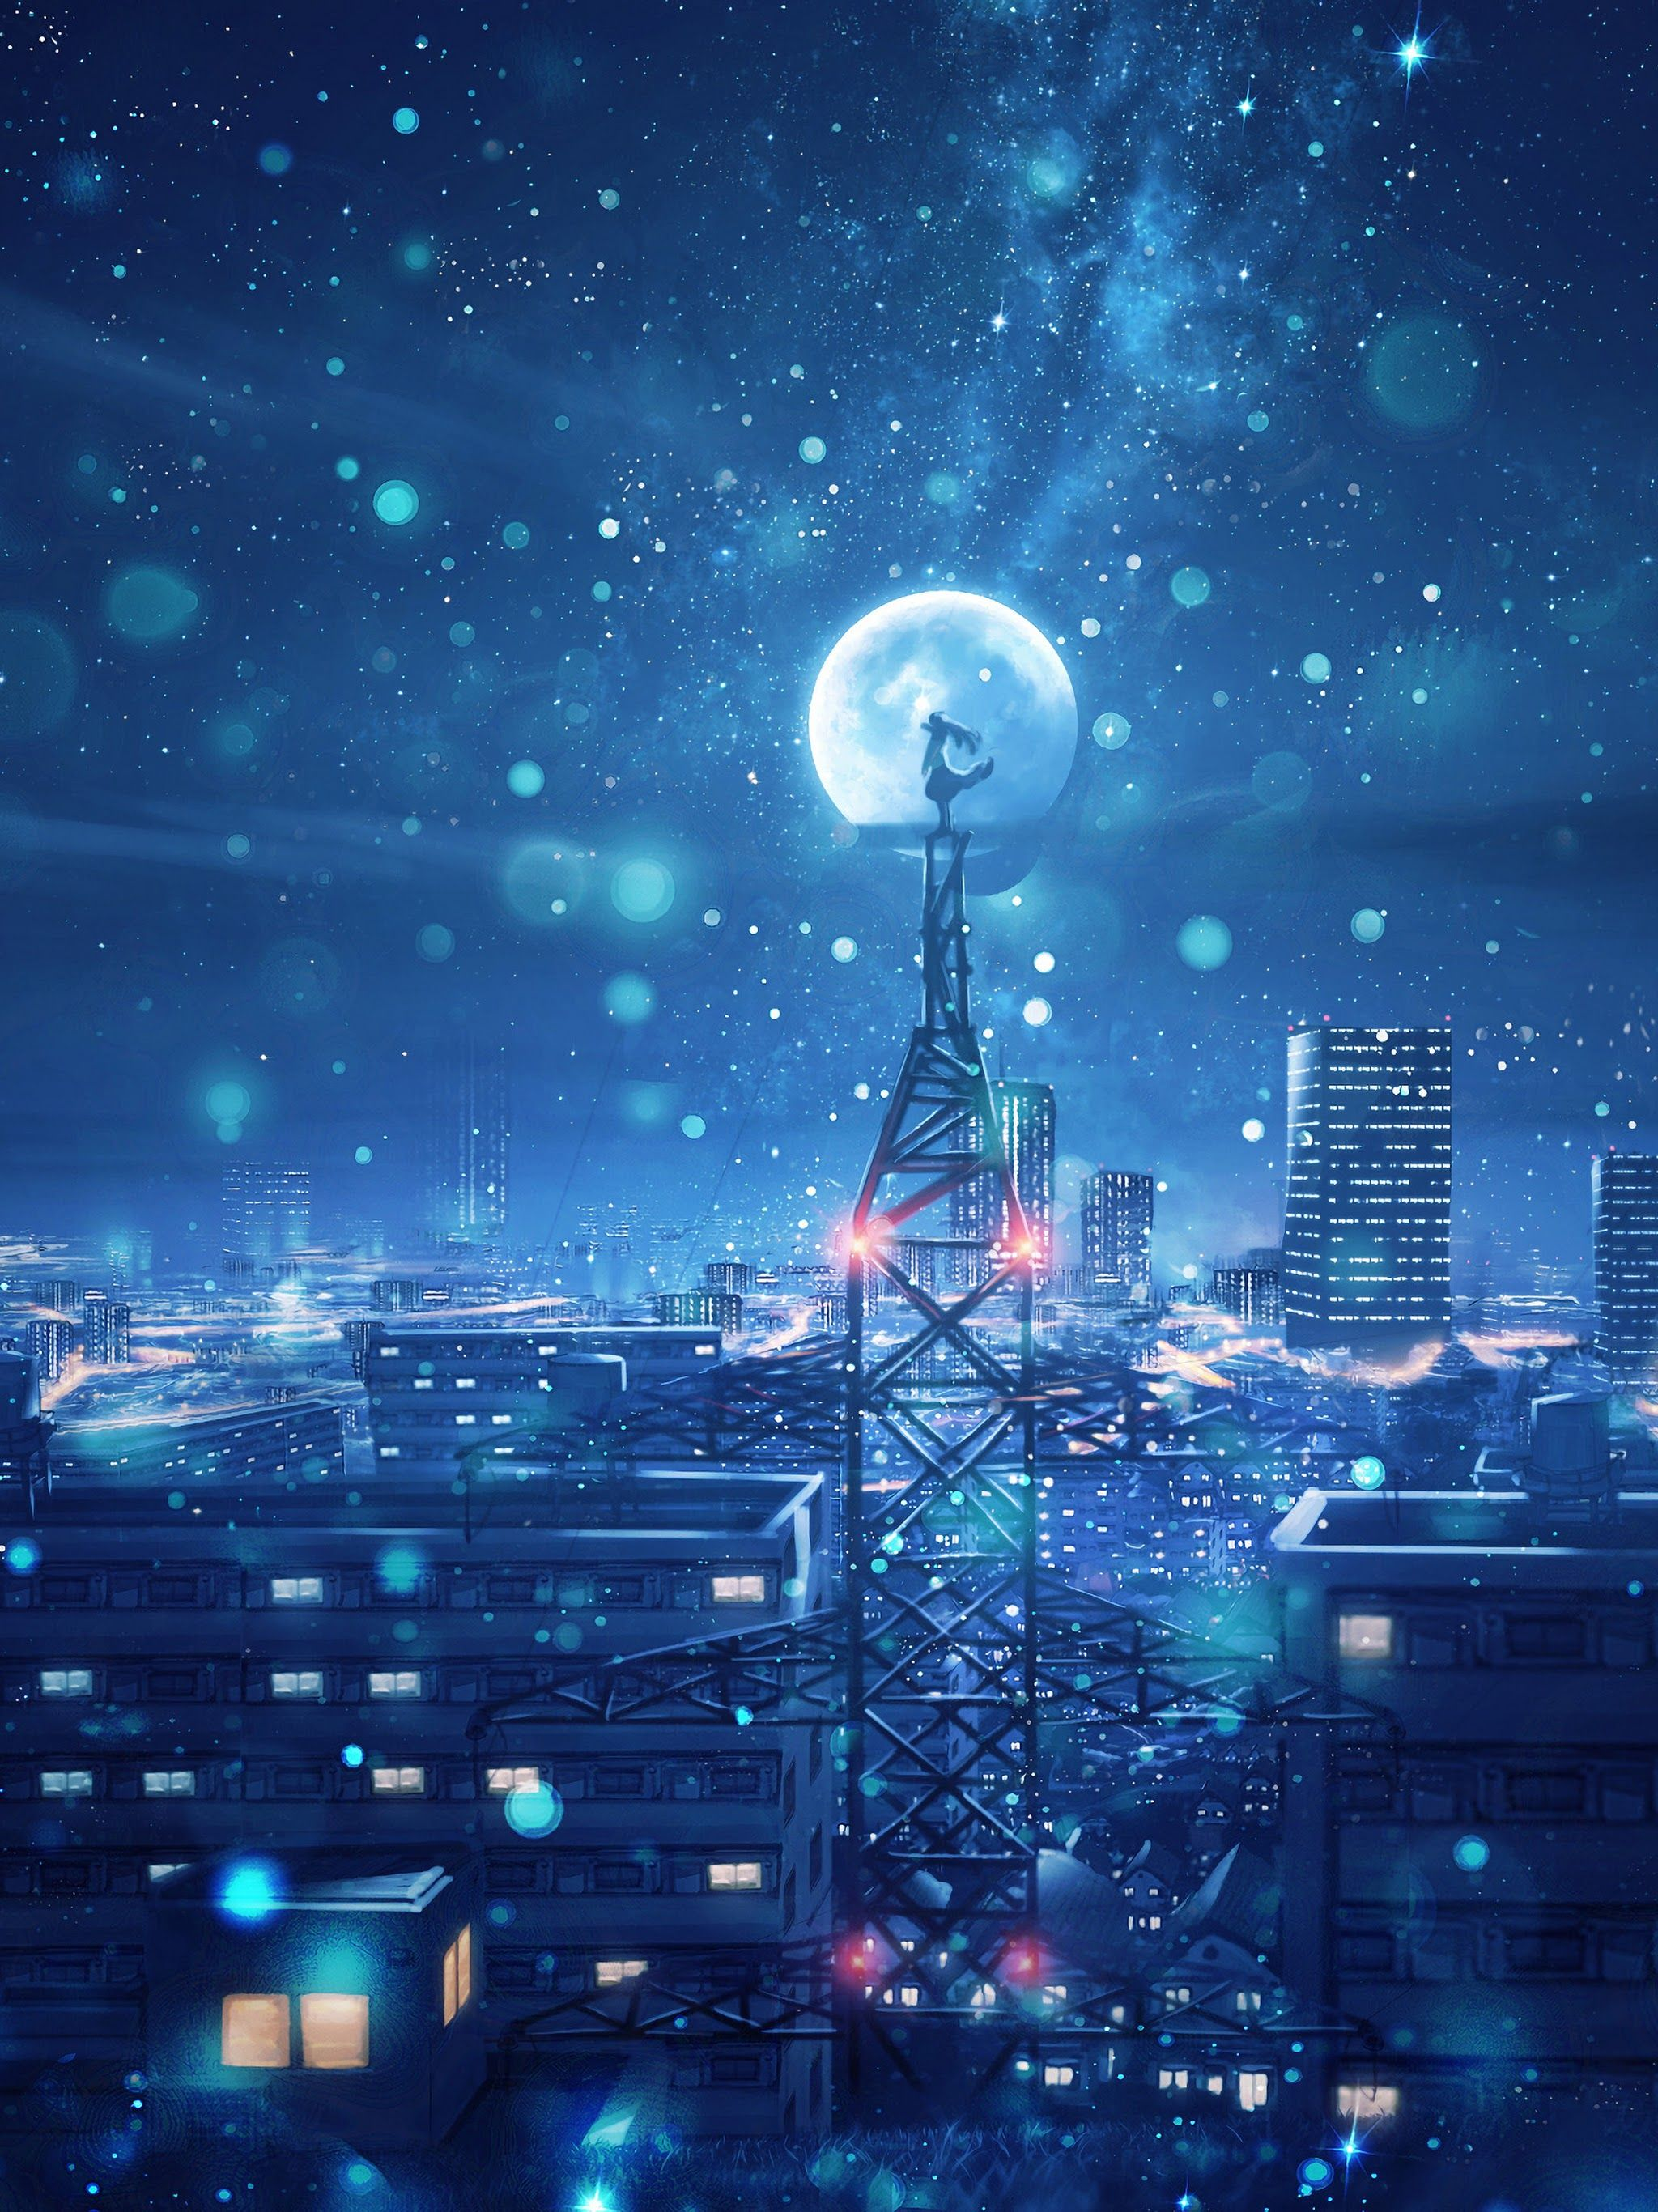 4k Night Sky Anime Portrait Wallpapers Wallpaper Cave